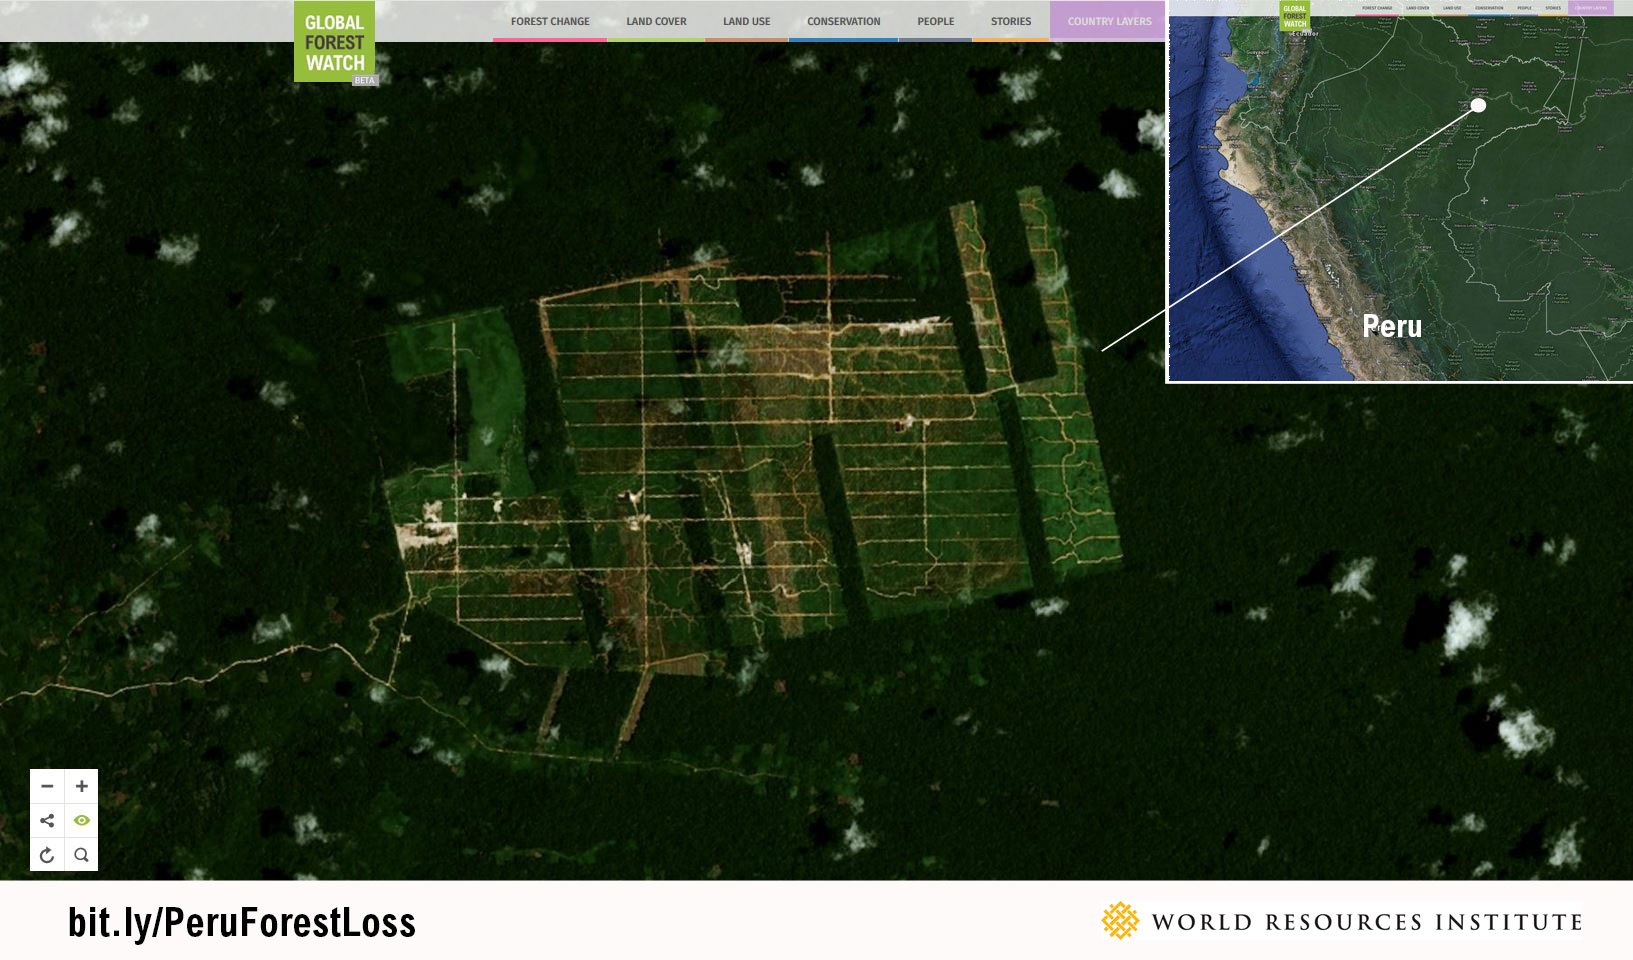 <p>The United Cacao plantation near Iquitos, Peru, as seen by Urthecast satellite imagery.</p>